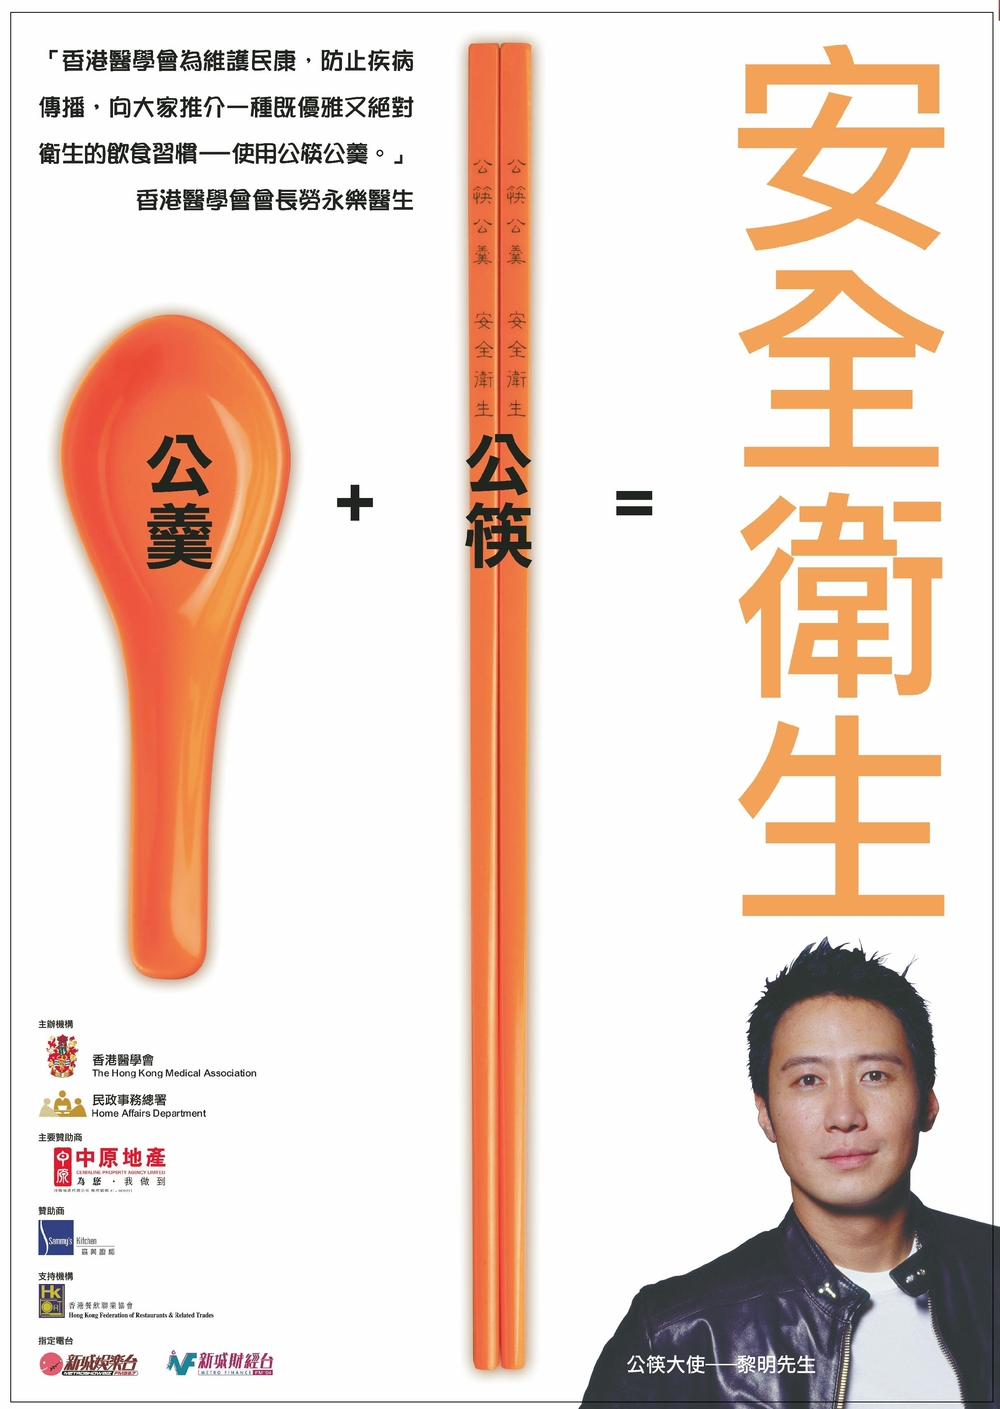 Hong Kong's campaign for the use of serving chopsticks after the outbreak of SARS.